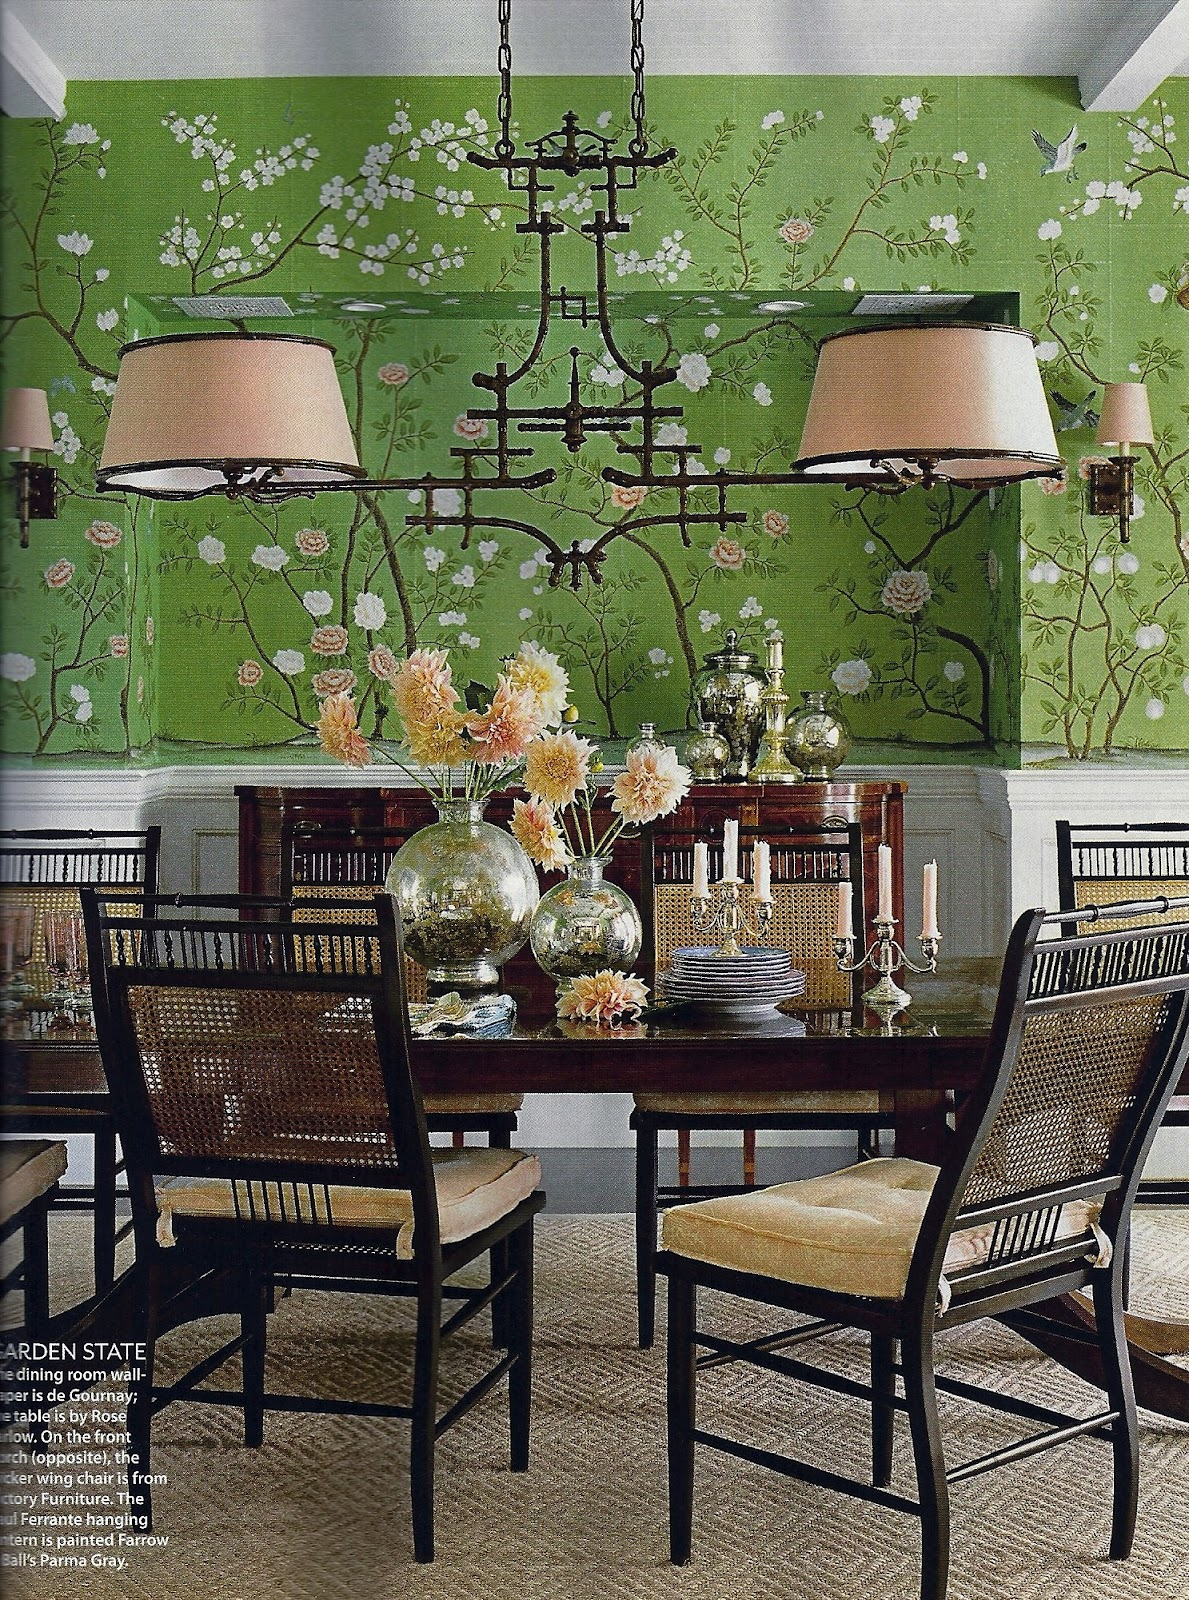 Chinoiserie Lighting In The Dining Room Usually I Thumb Pretty Quickly Through My Issues Of Coastal Living Magazine But I Stopped In My Tracks On This